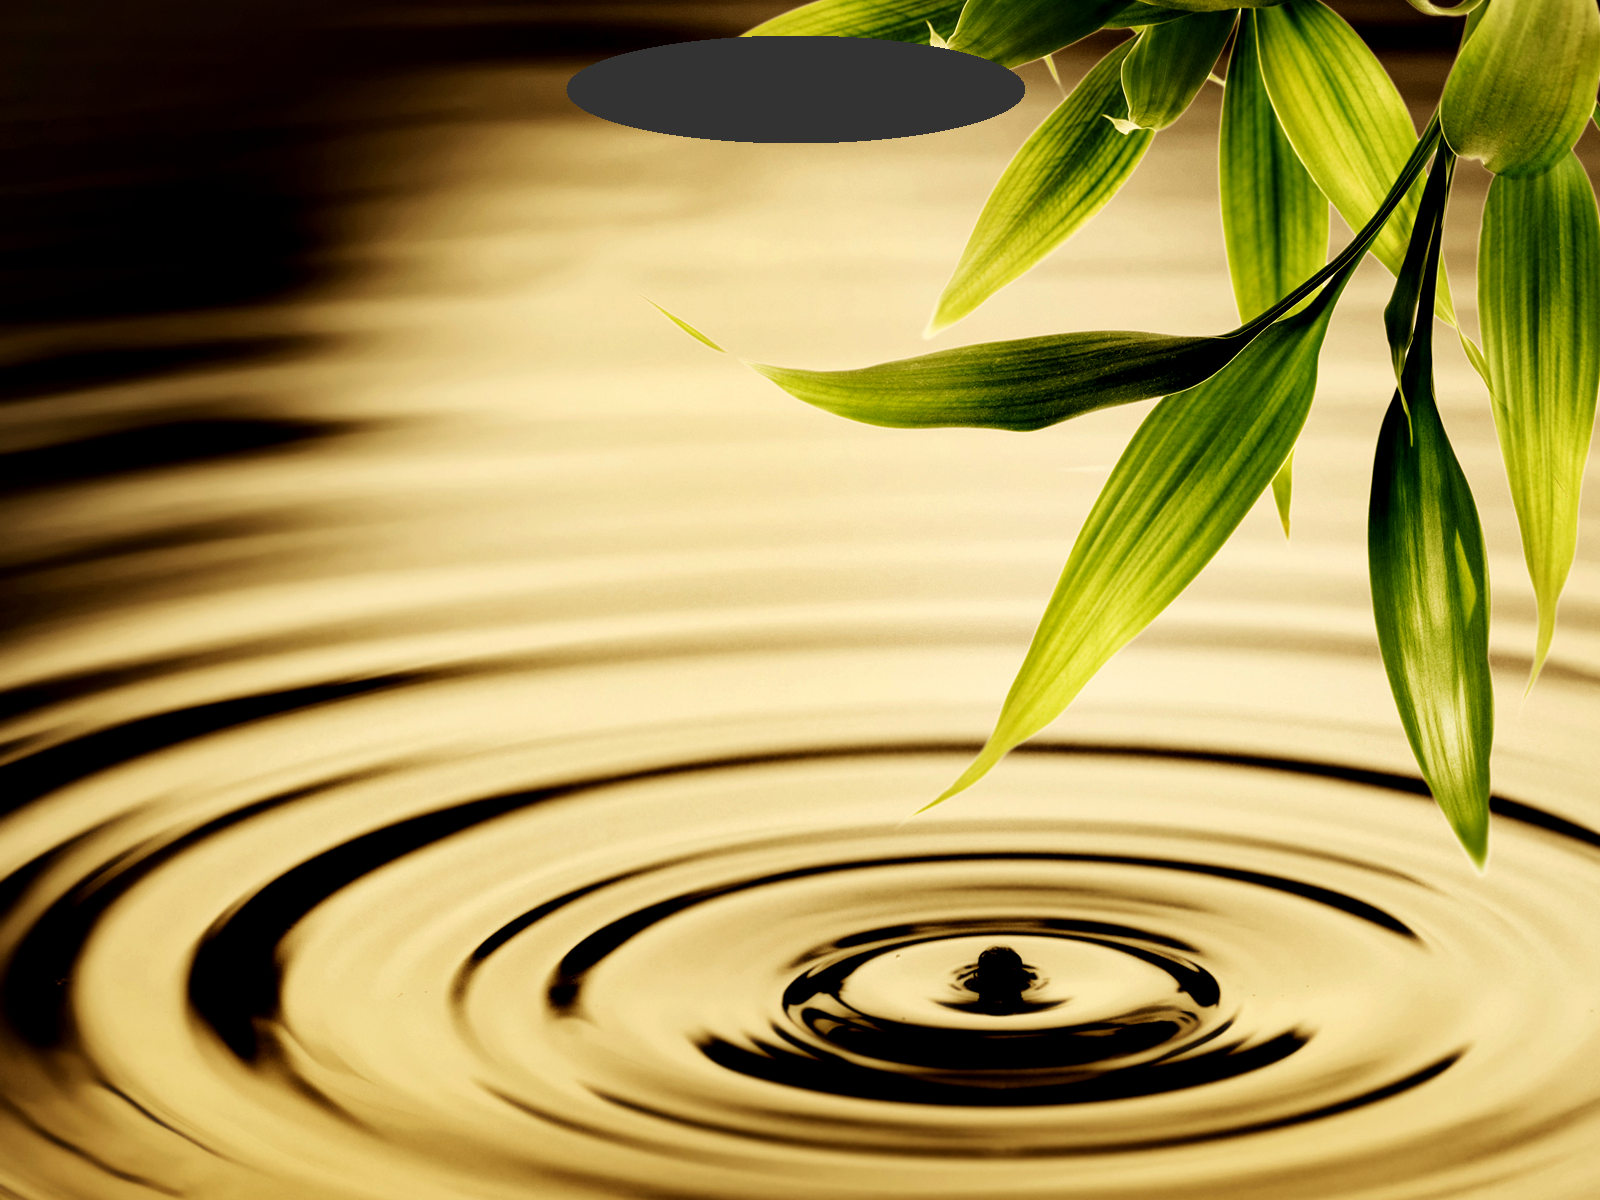 Water-Ripples-and-Greenery-2.png